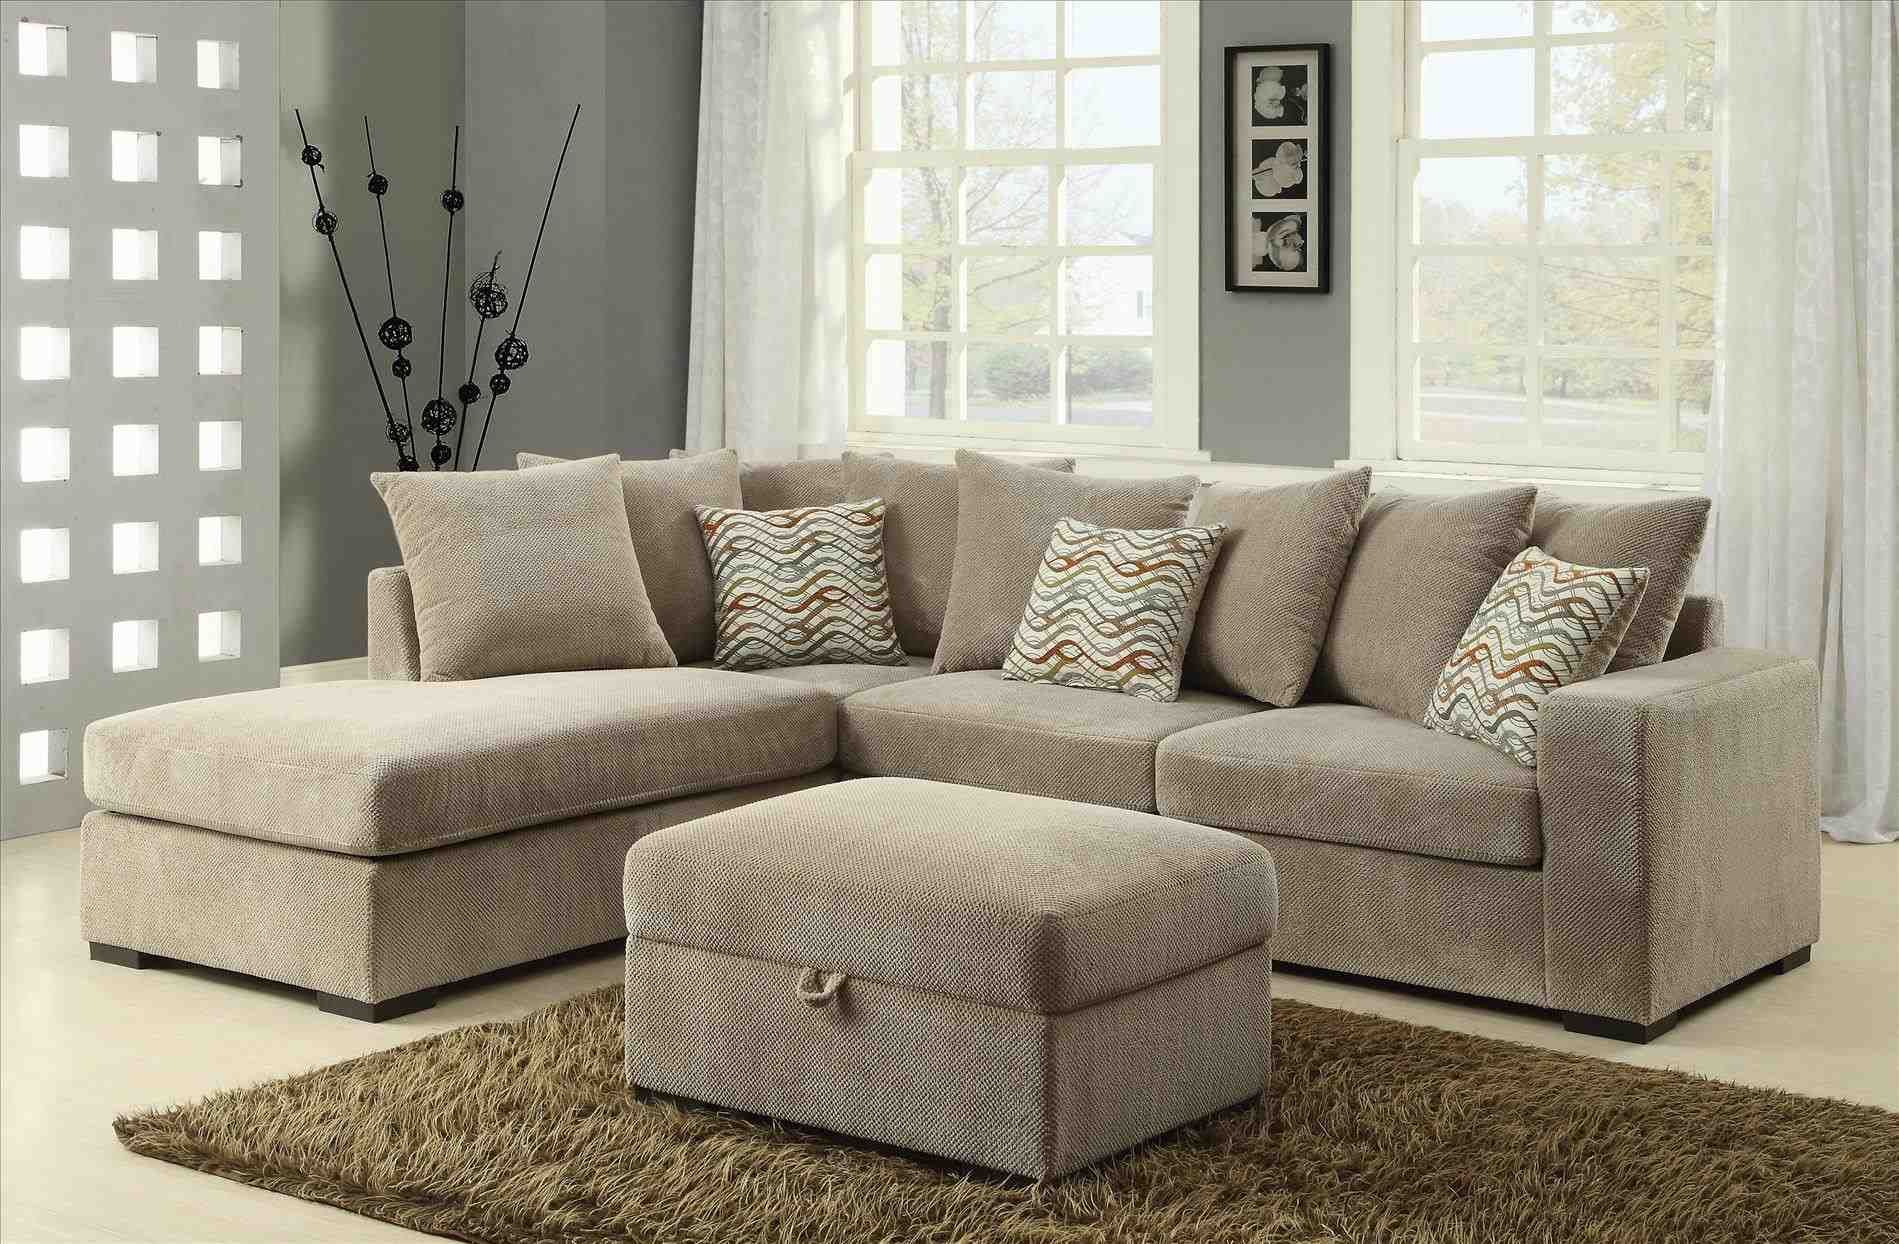 Cheap Sectionals Toronto Sectional Sofa With Chaise Fabric Sectional Sofas Upholstered Sectional